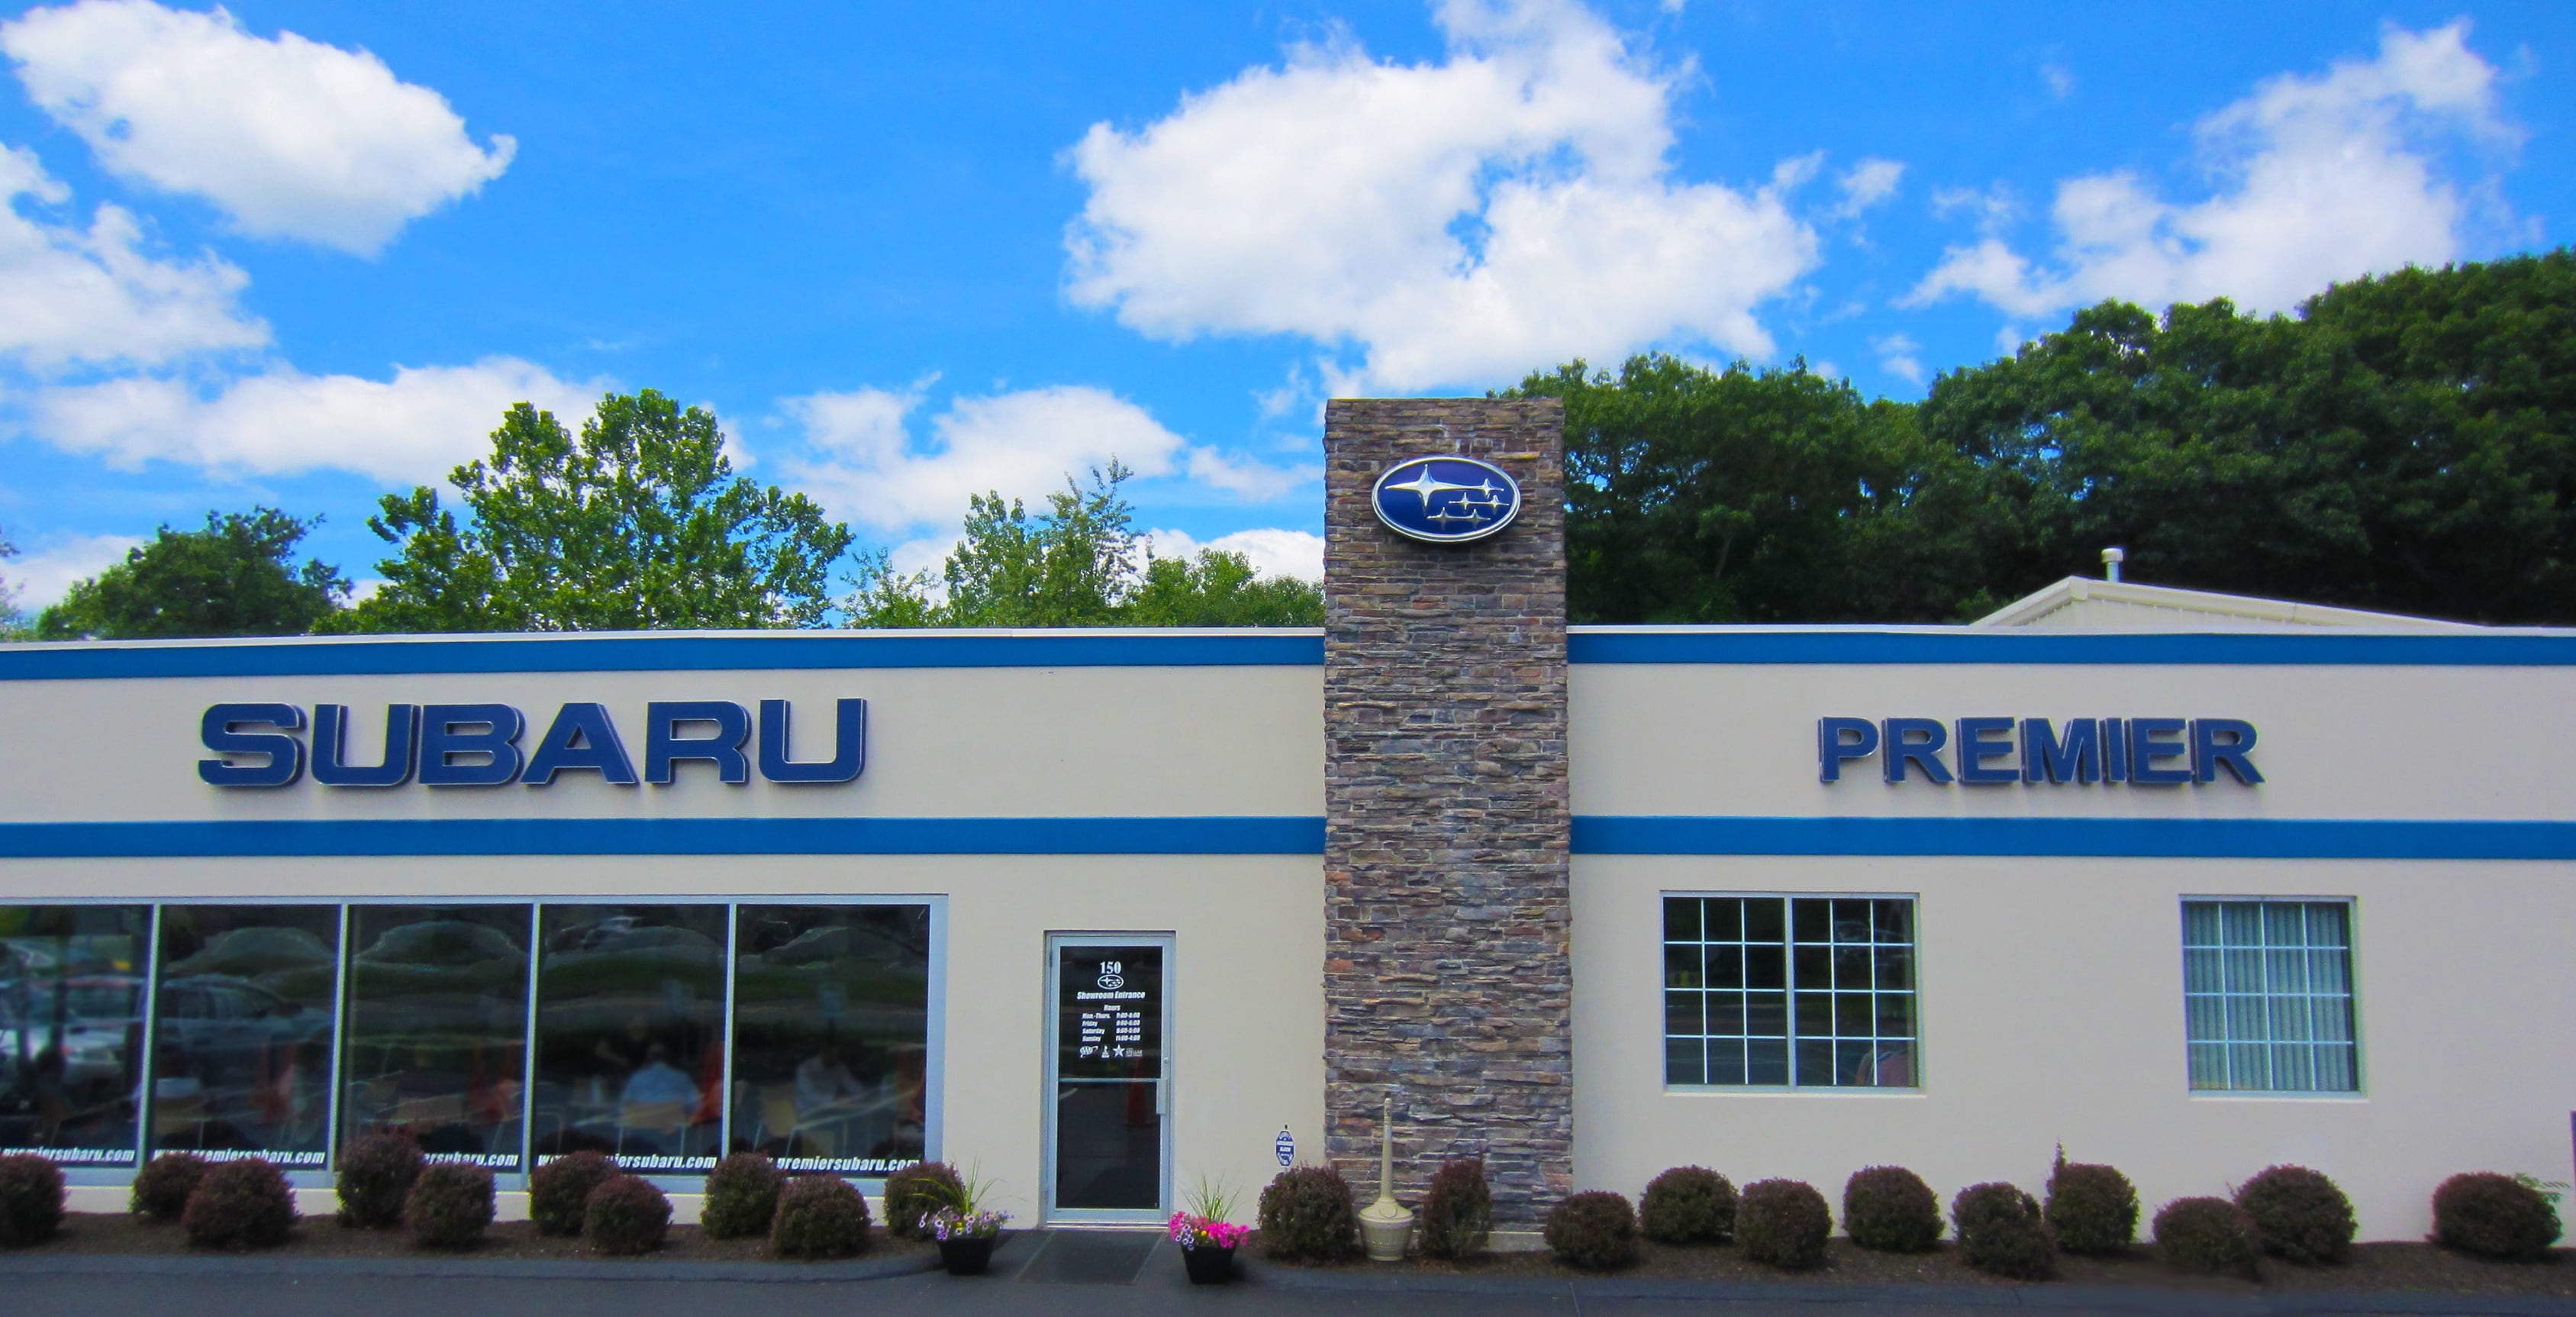 Subaru Lease Wallingford CT Area